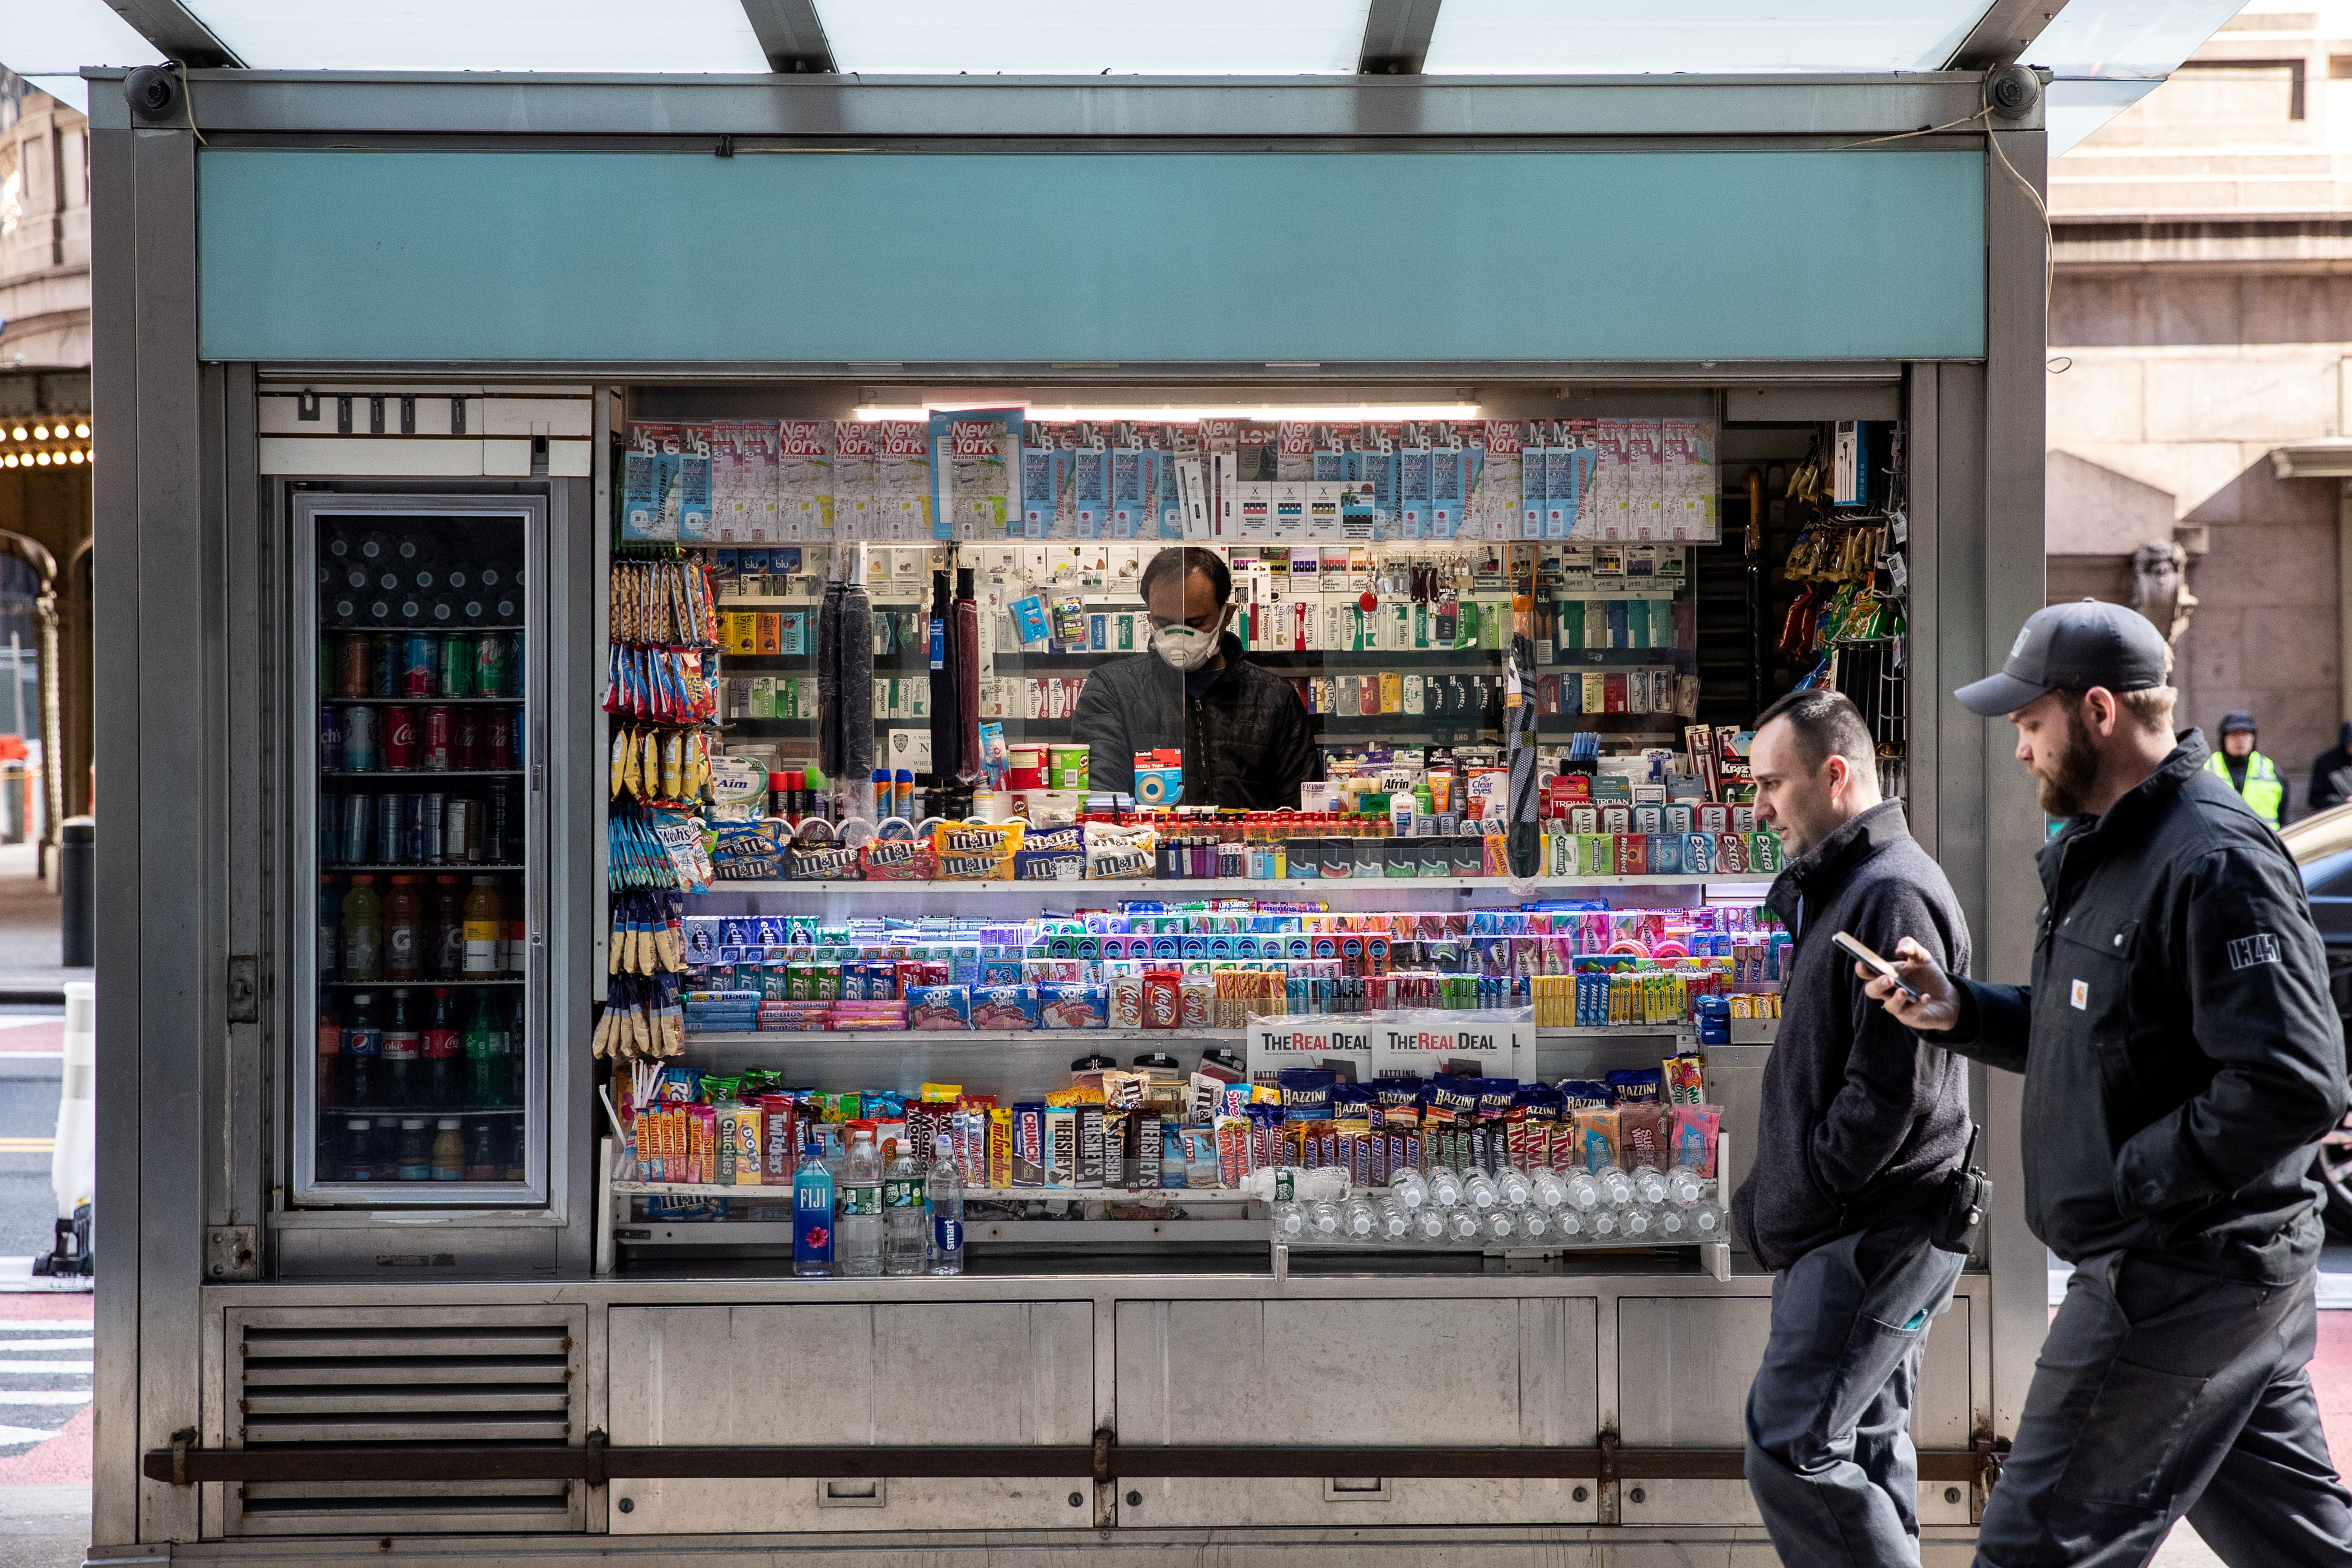 A man wearing a protective mask is seen at a newsstand following the outbreak of coronavirus disease (COVID-19), in New York City, U.S., March 16, 2020. REUTERS/Jeenah Moon/File Photo